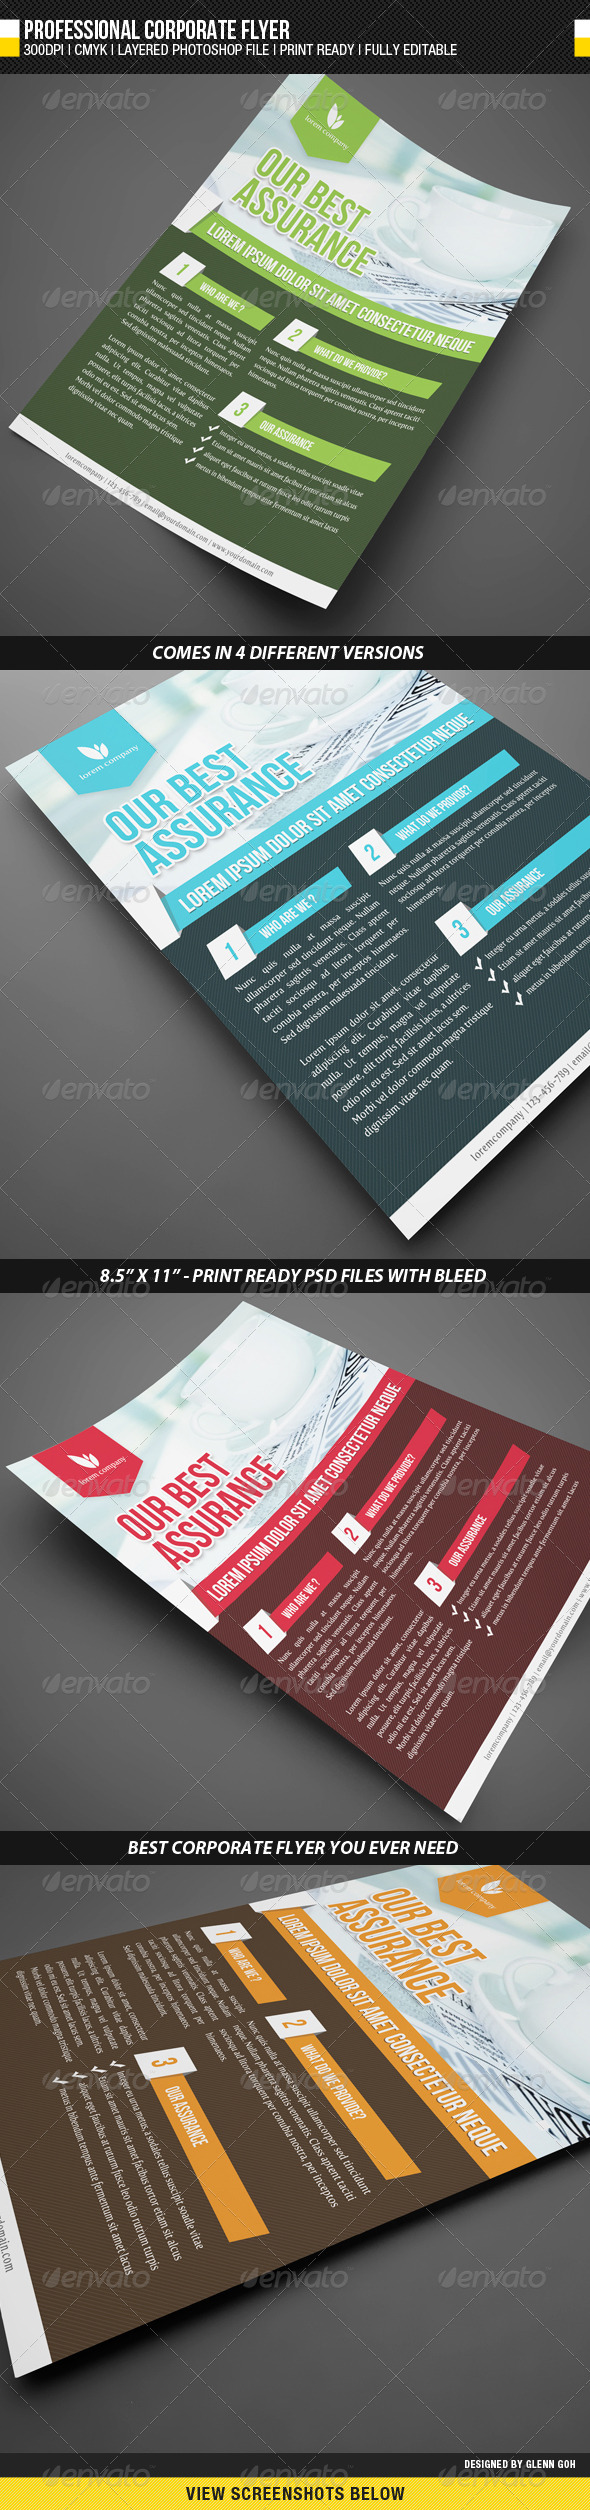 GraphicRiver Professional Corporate Flyer 1706346